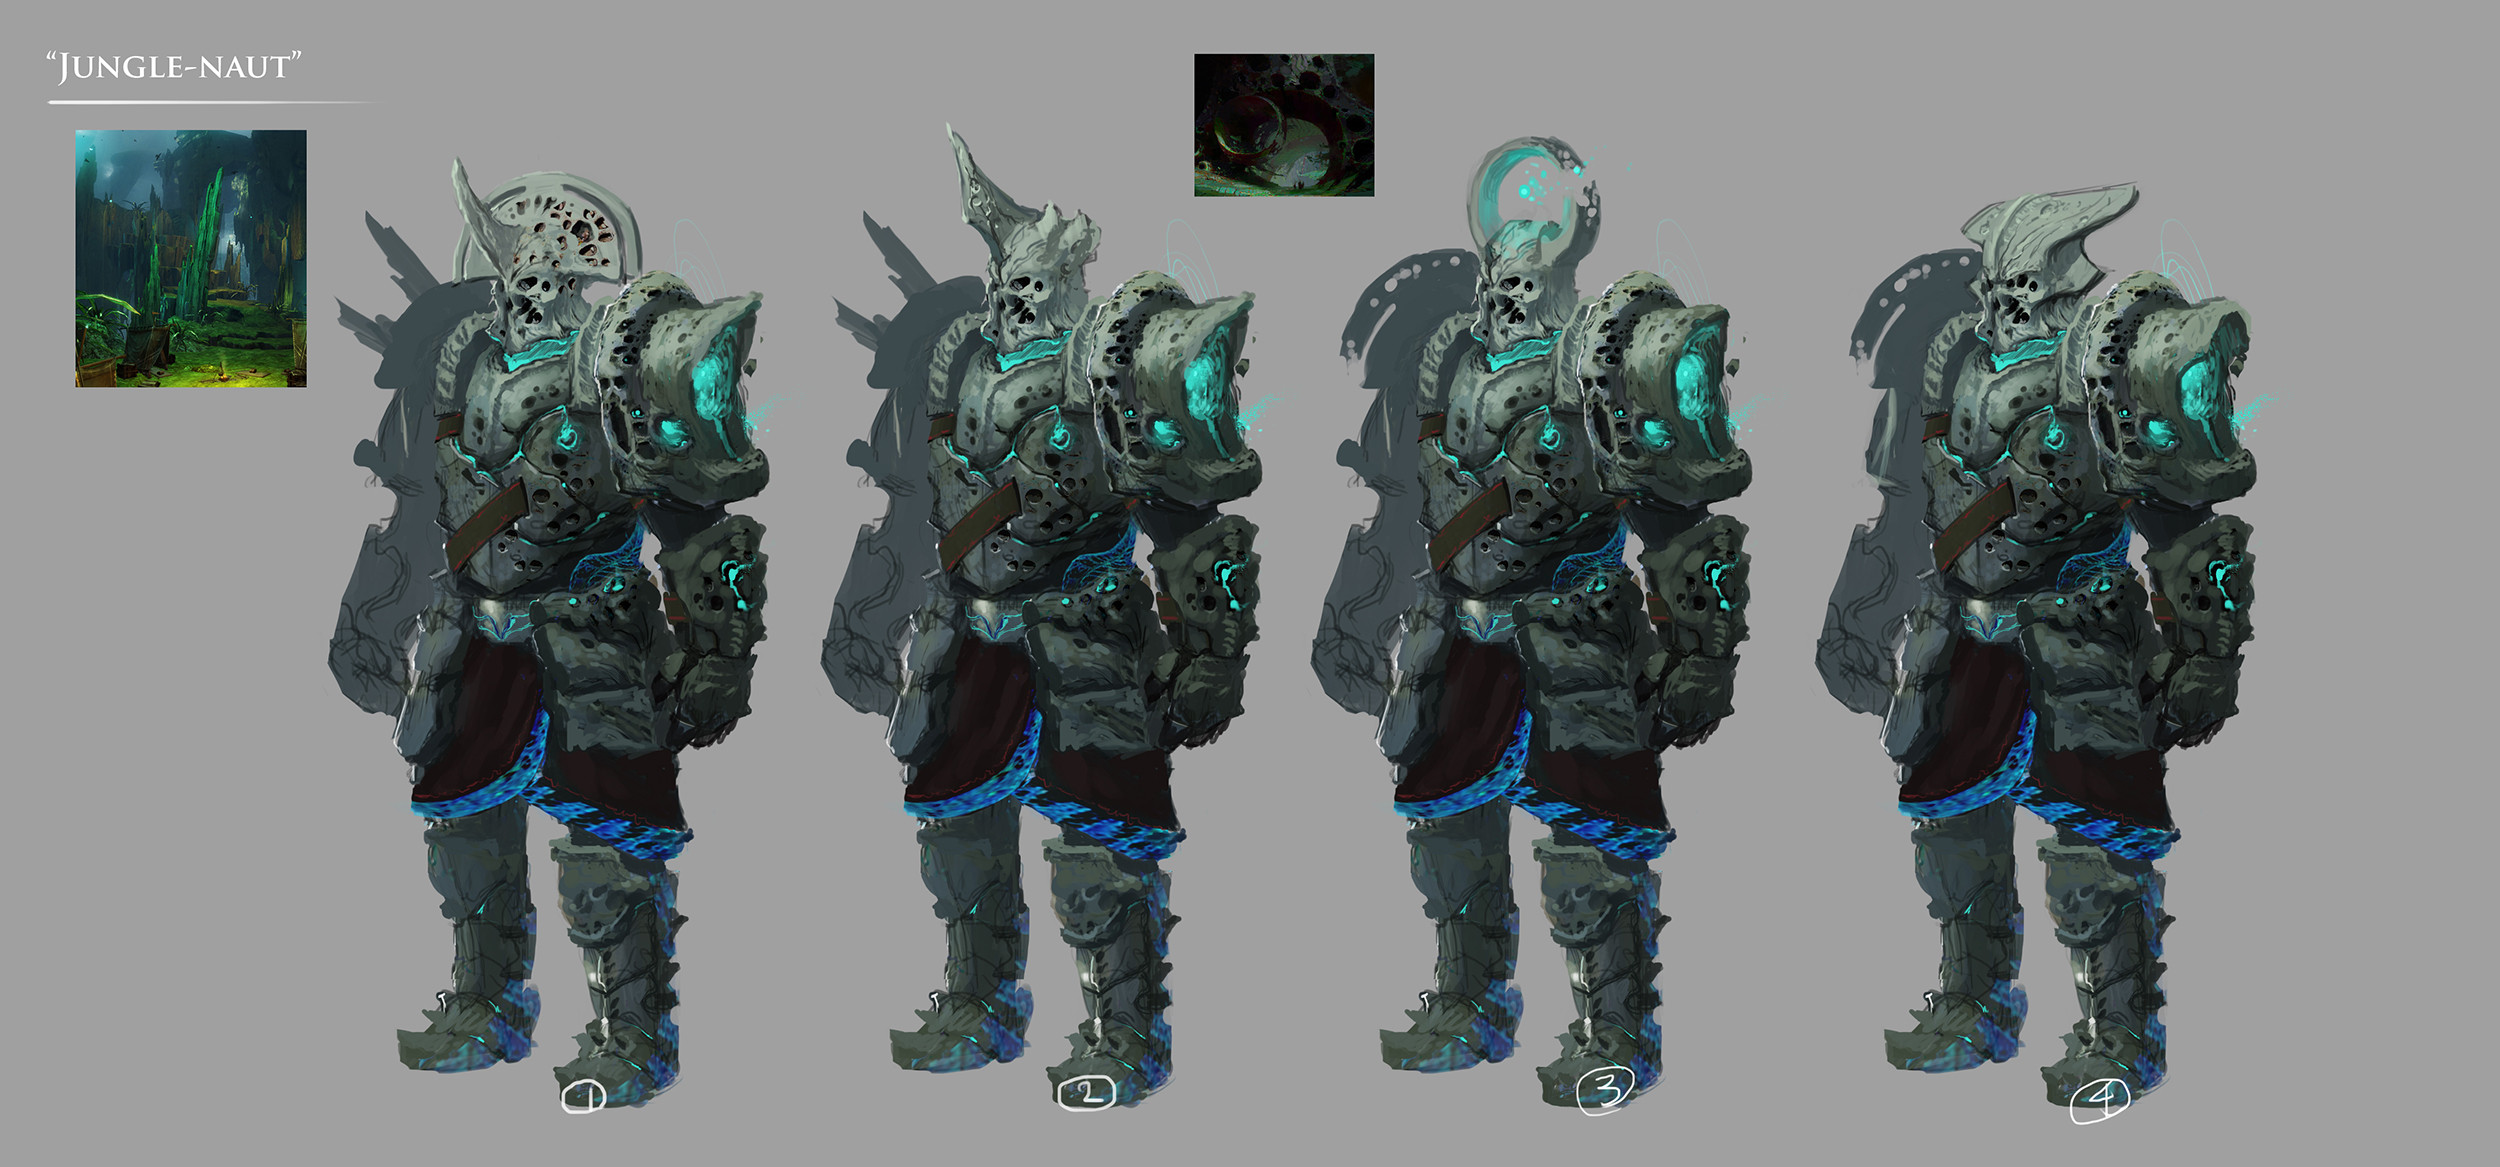 Some helmet designs for the heavy version.